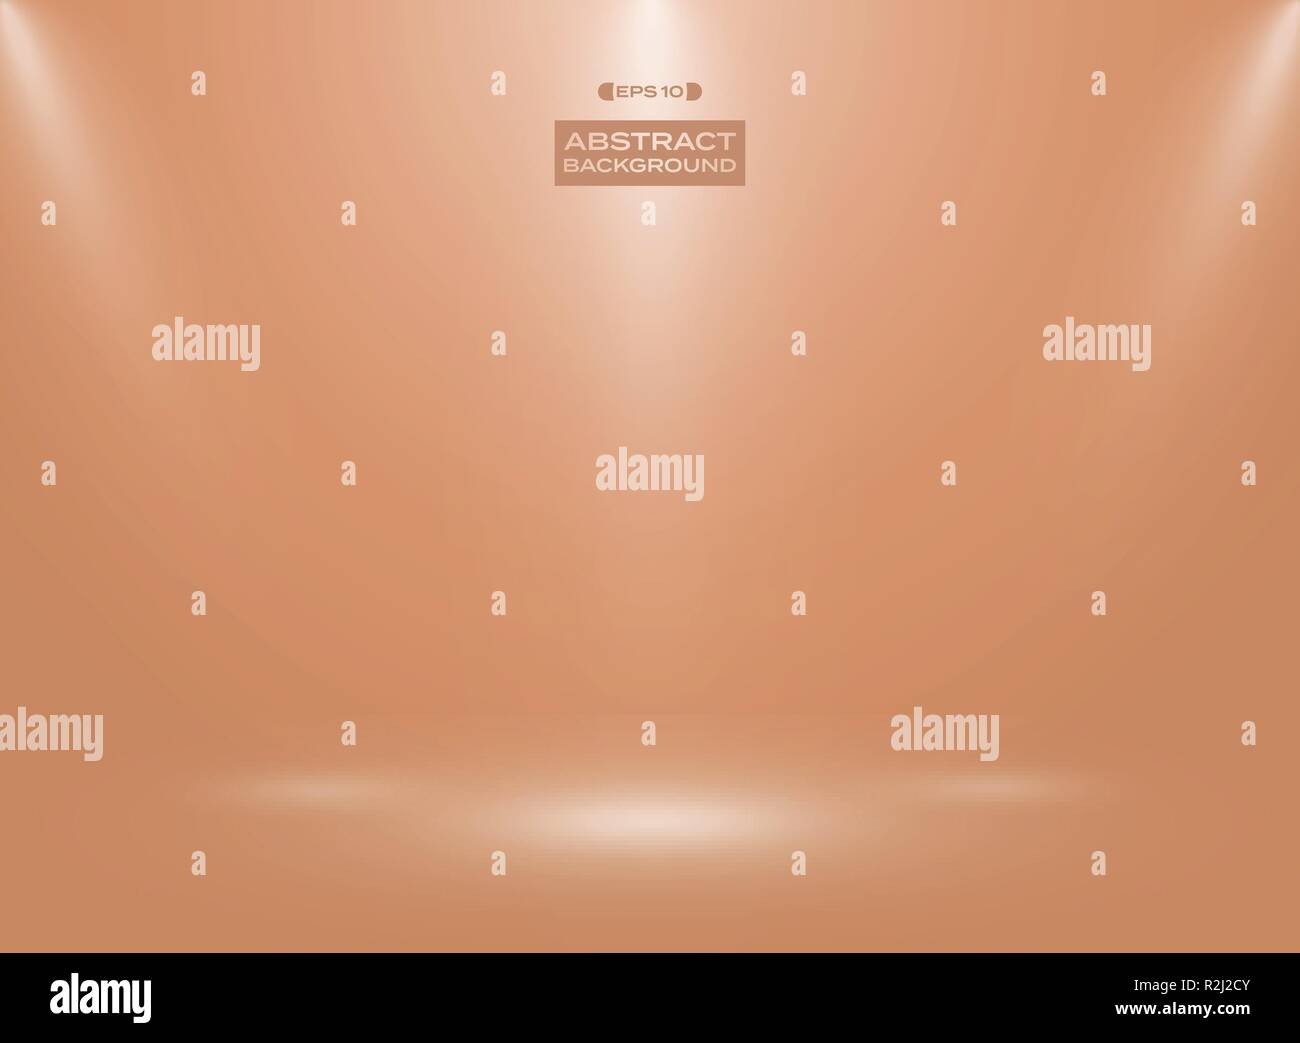 Abstract of orange shell egg color in studio room background. Vector eps10 - Stock Vector